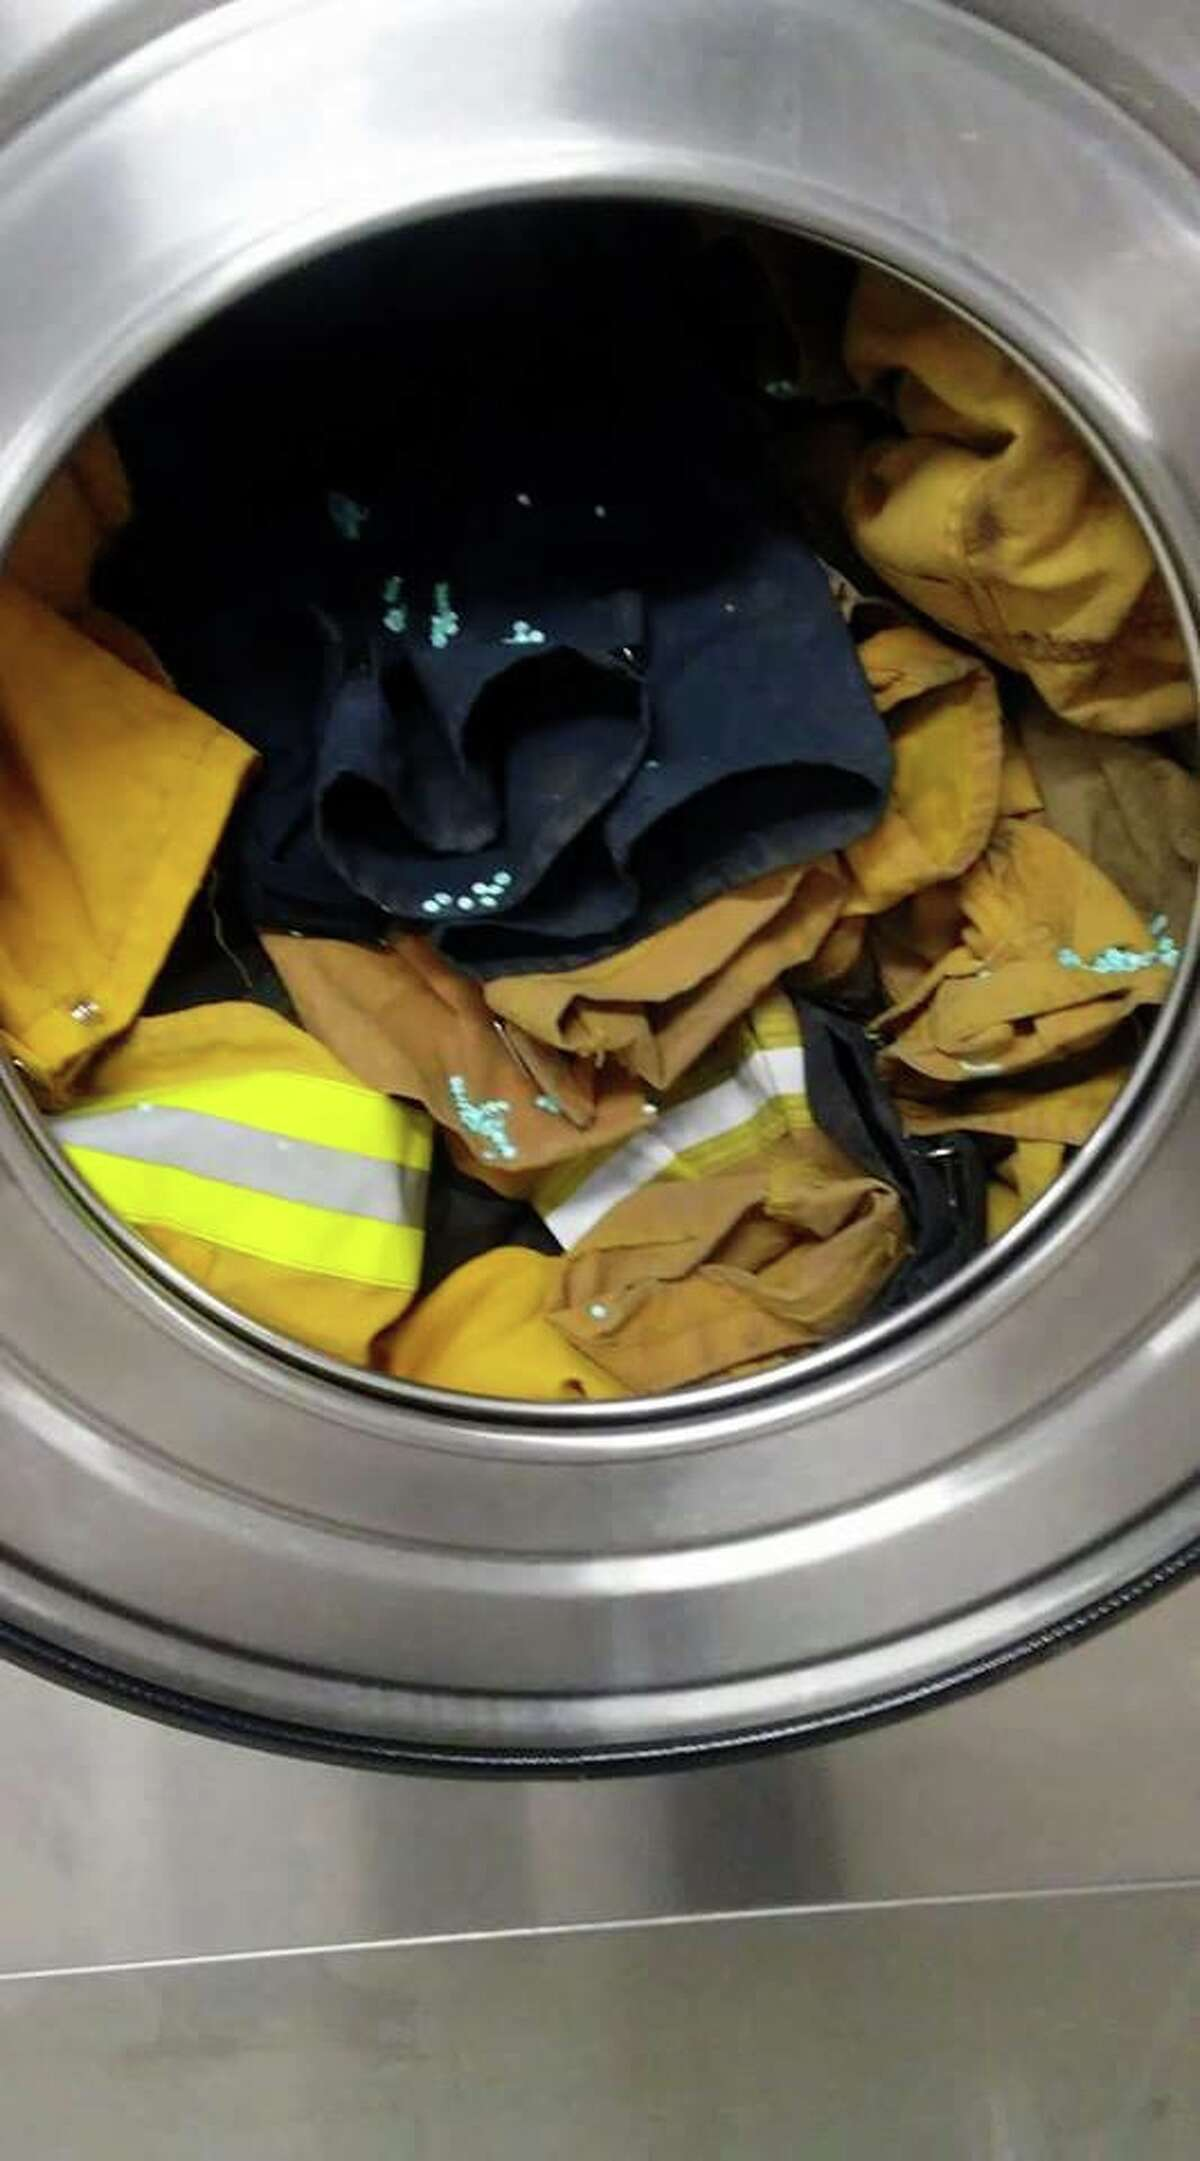 A hotel offered to wash a group of firefighters' uniforms for free.